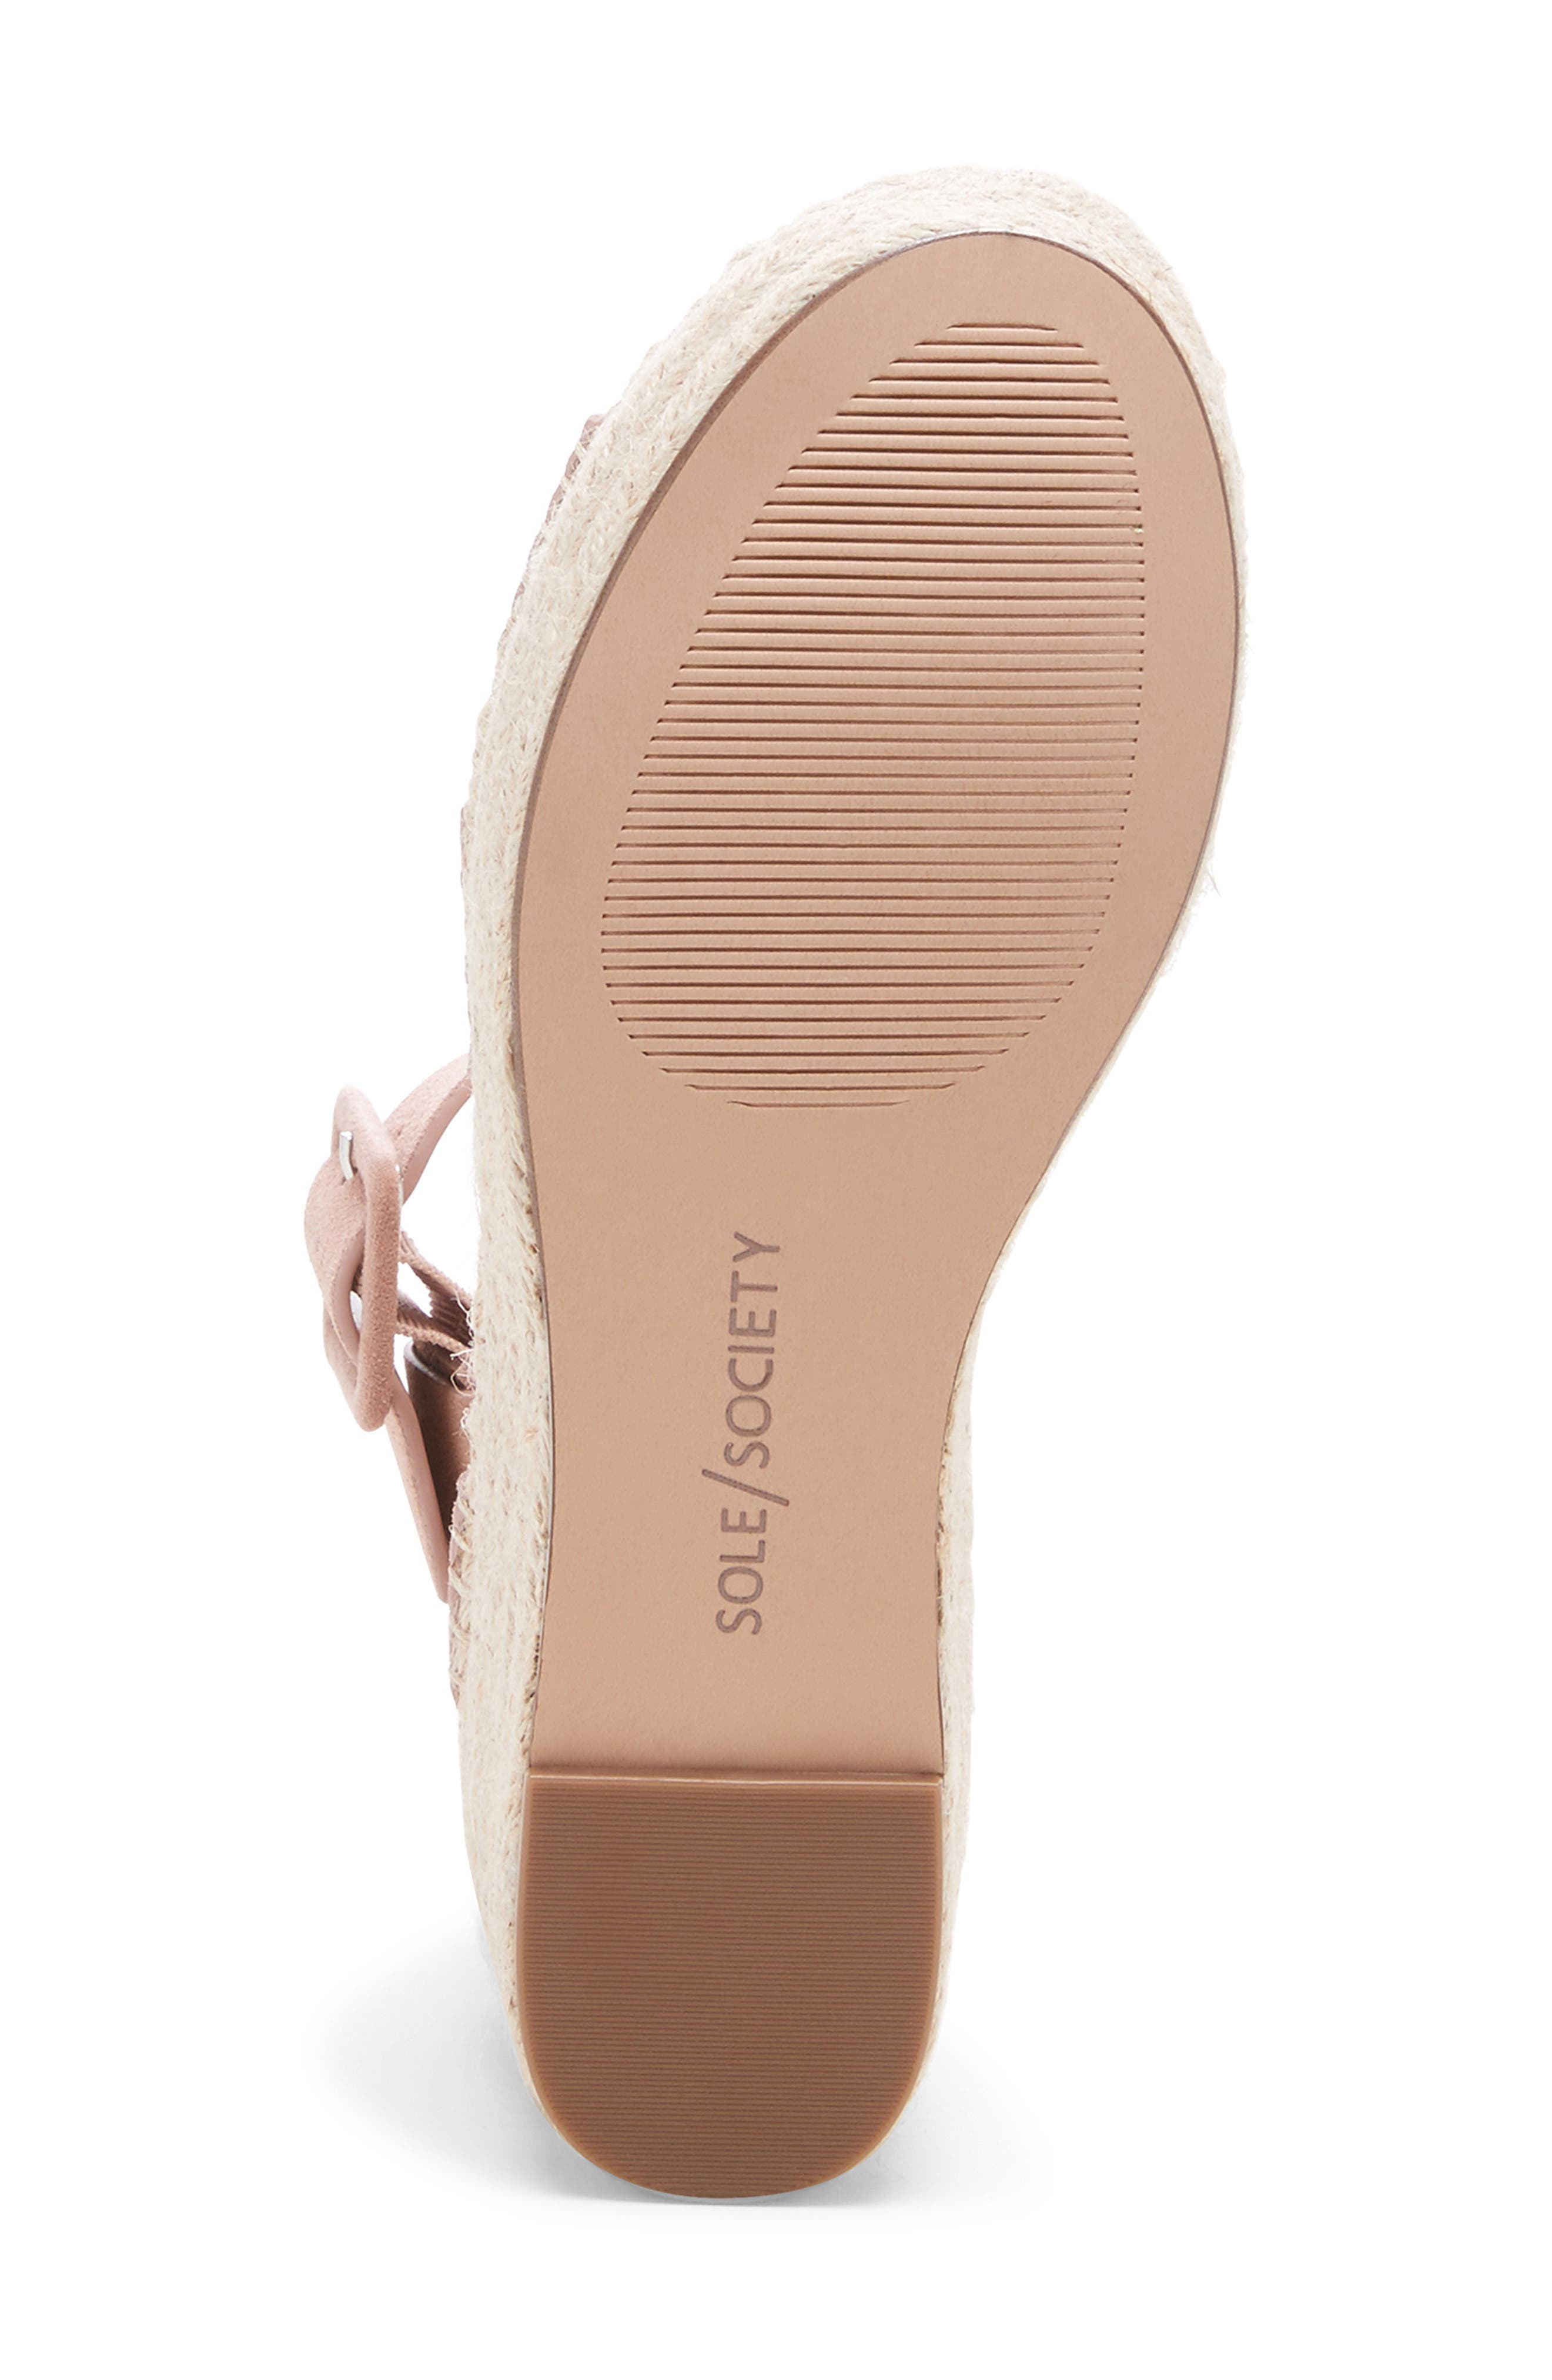 SOLE SOCIETY, Audrina Platform Espadrille Sandal, Alternate thumbnail 6, color, DUSTY ROSE SUEDE